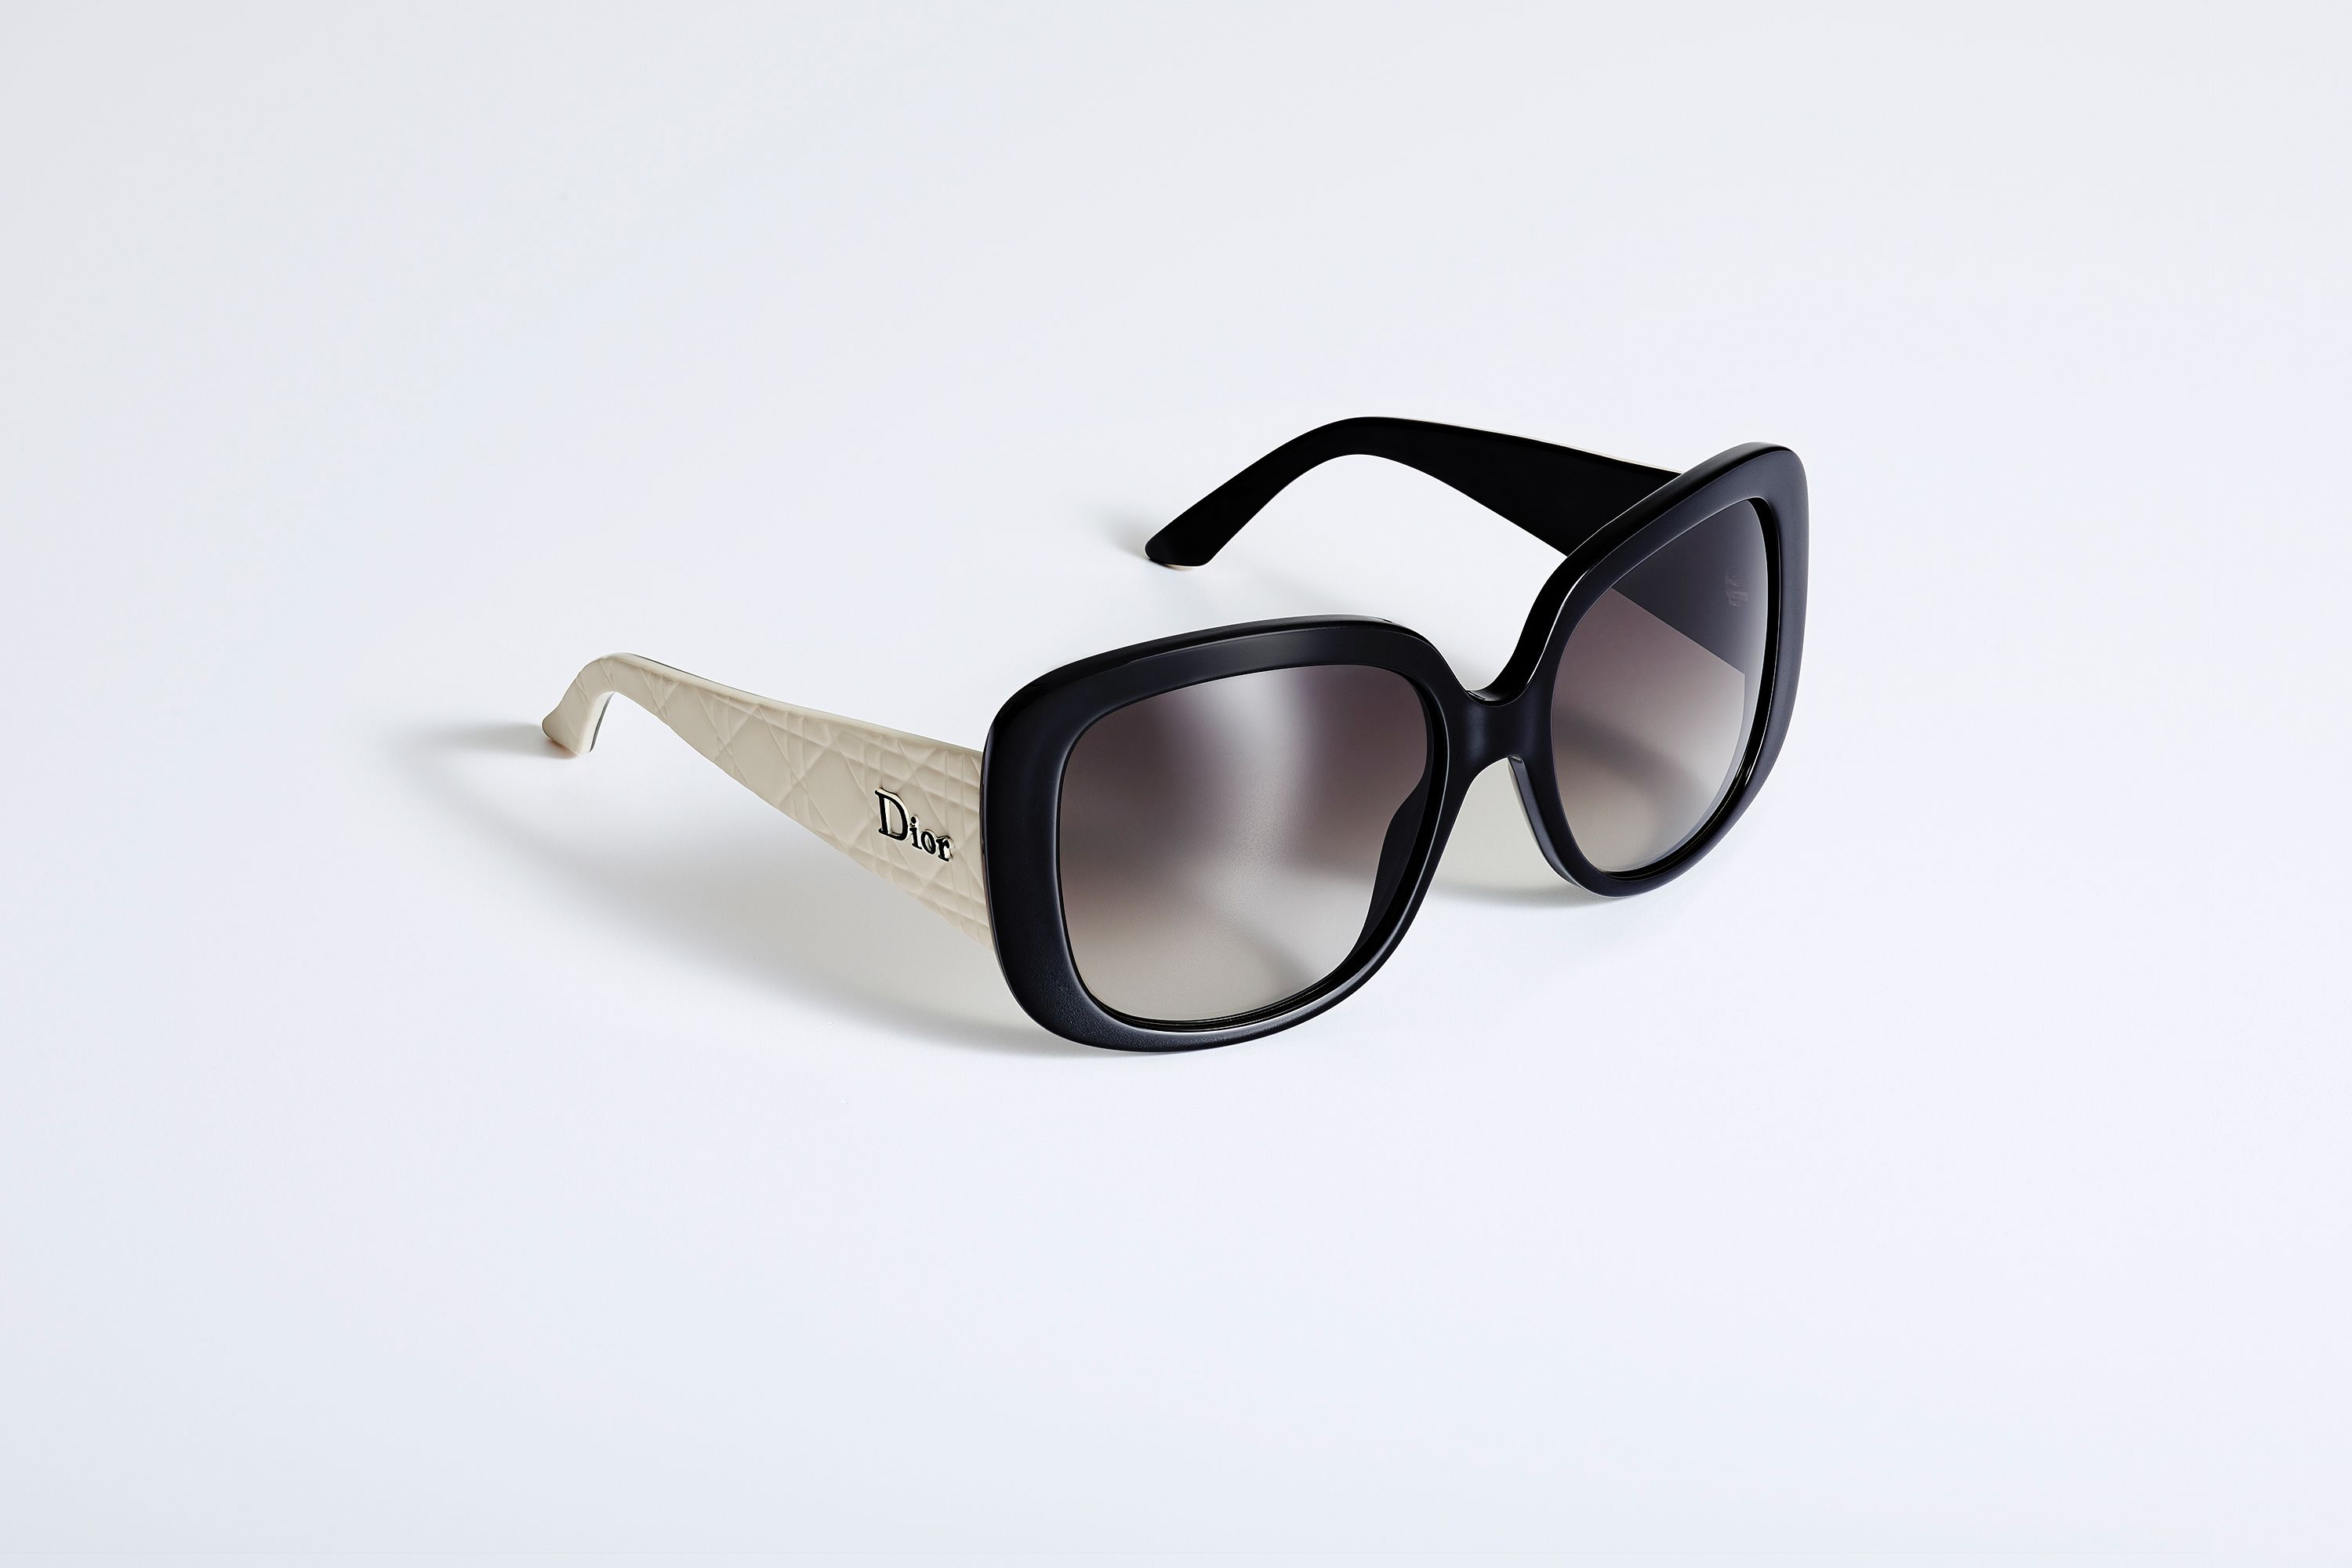 Dior Ladylady1 Sunglasses In Black Ivory Accessories Dior Sunglasses Dior Fashion Sunglasses